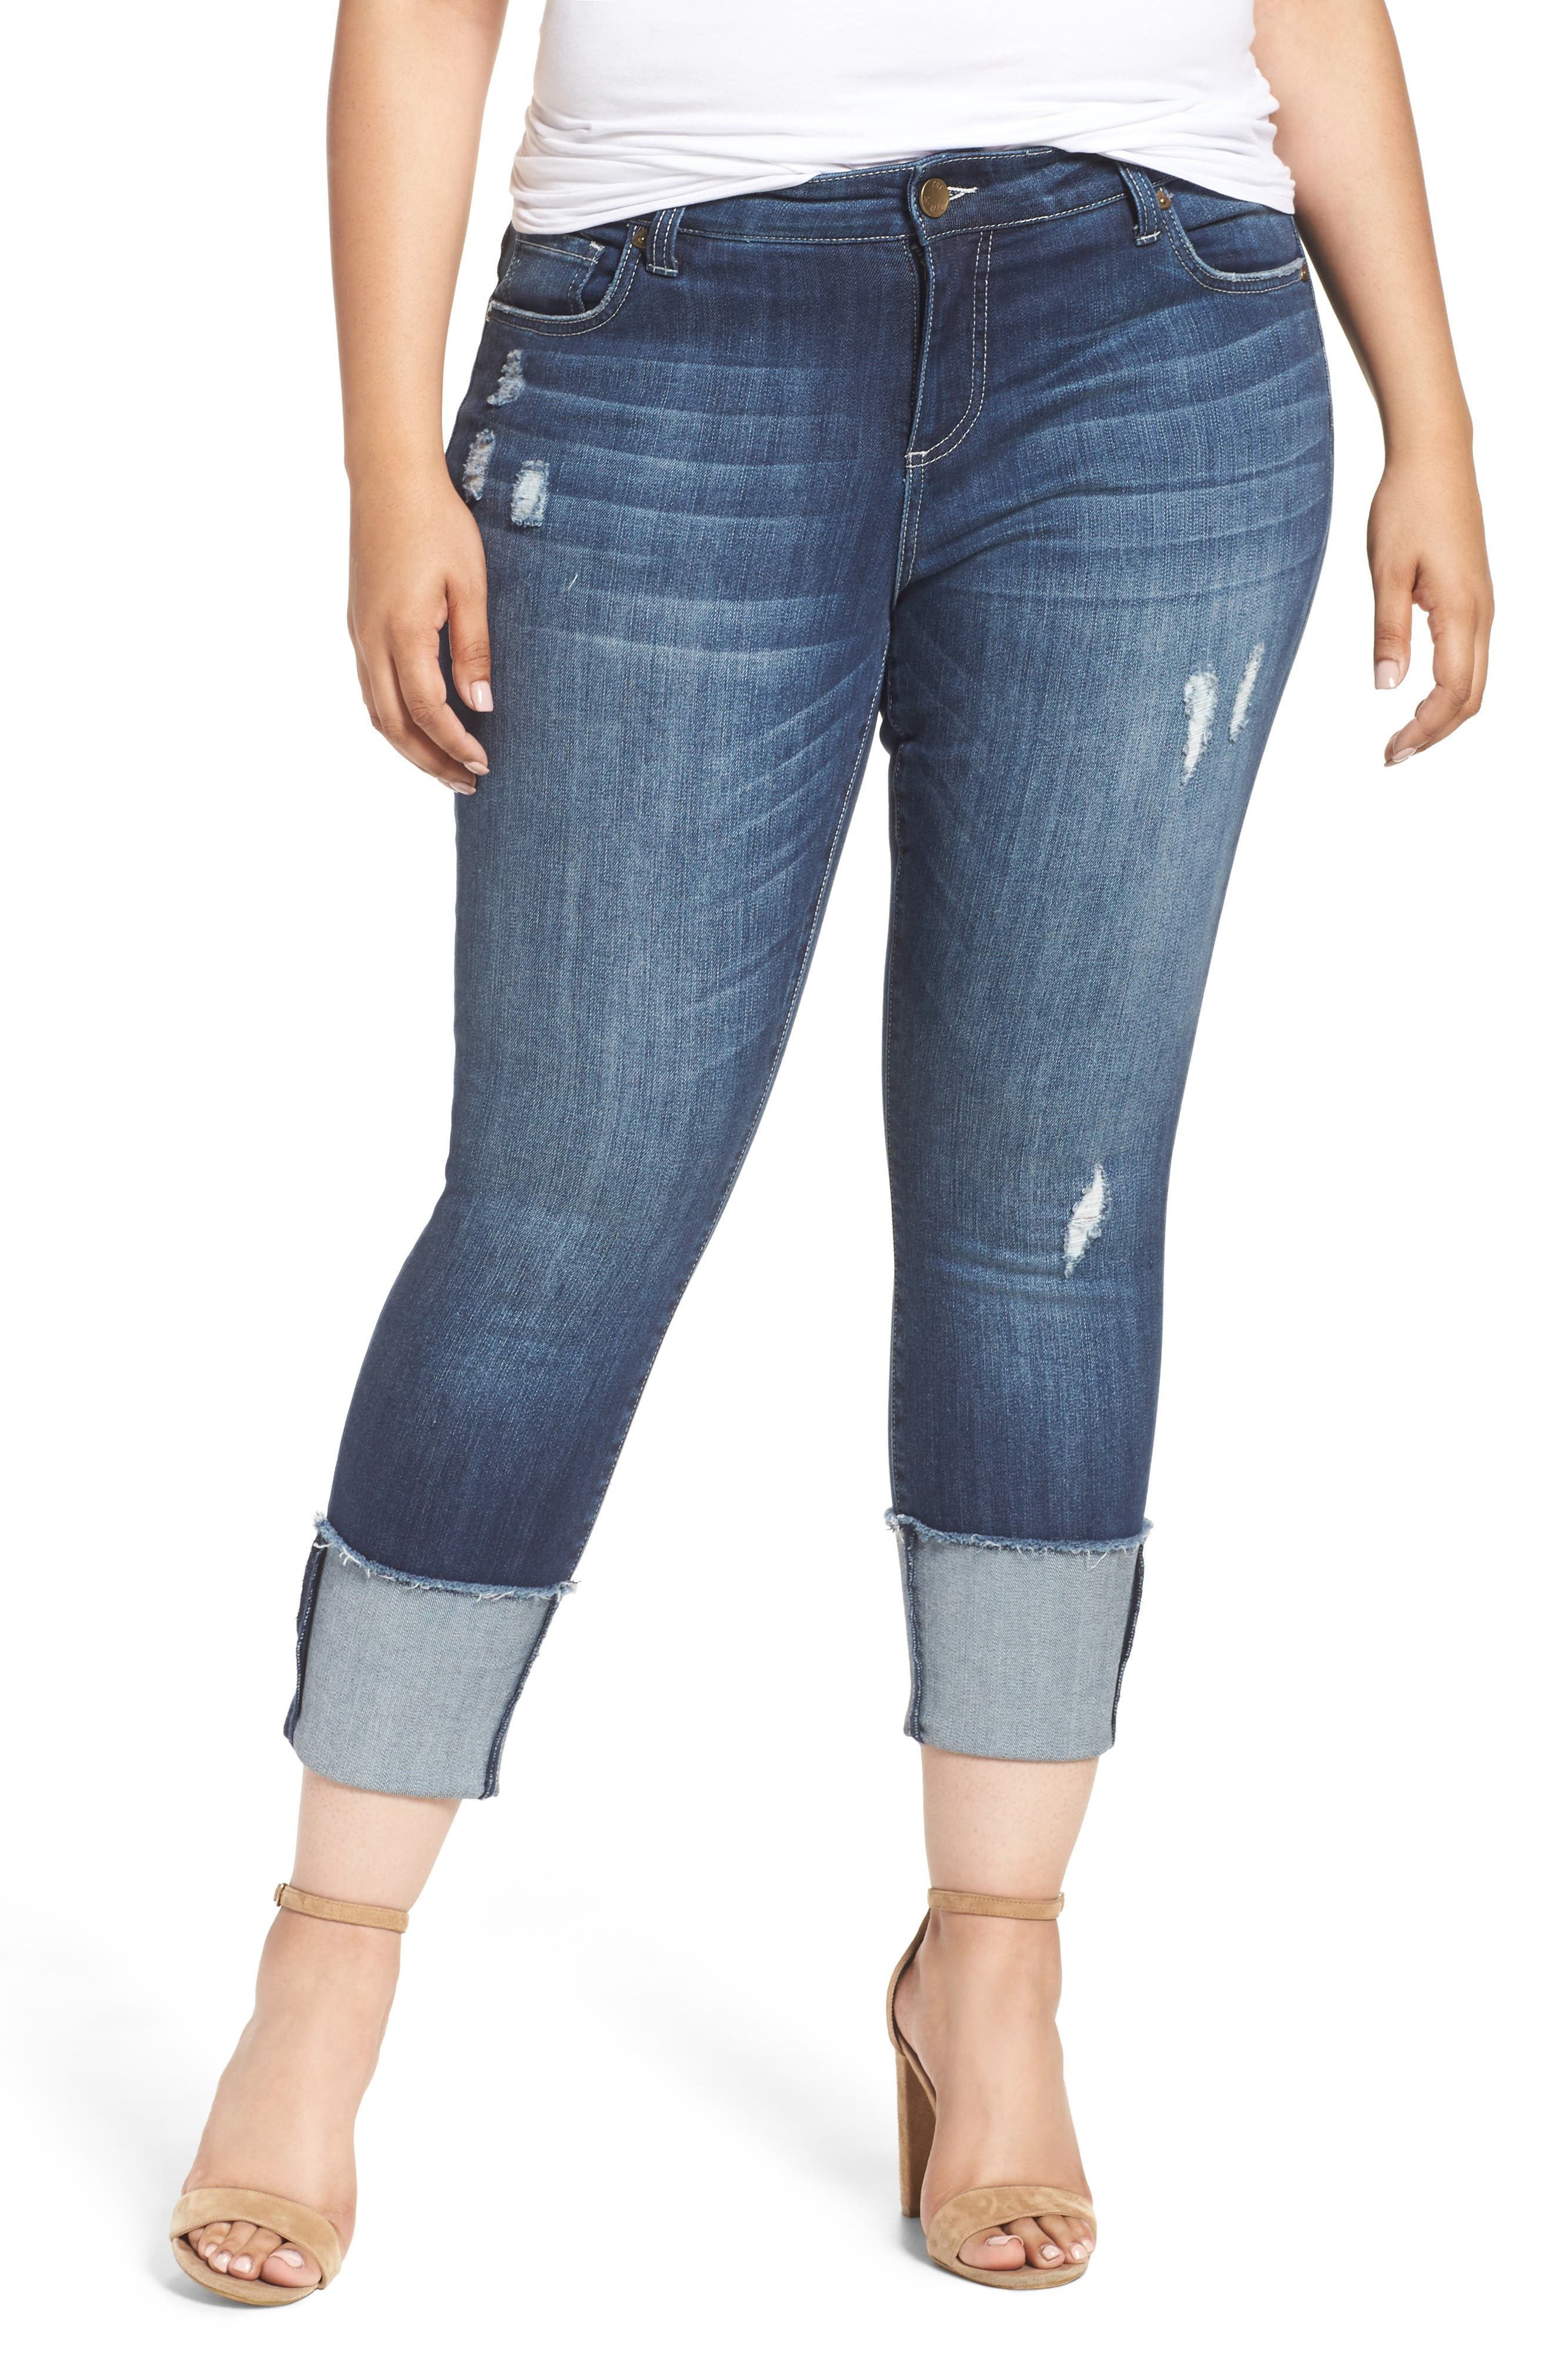 Cameron Cuffed Straight Leg Jeans,                         Main,                         color, 400